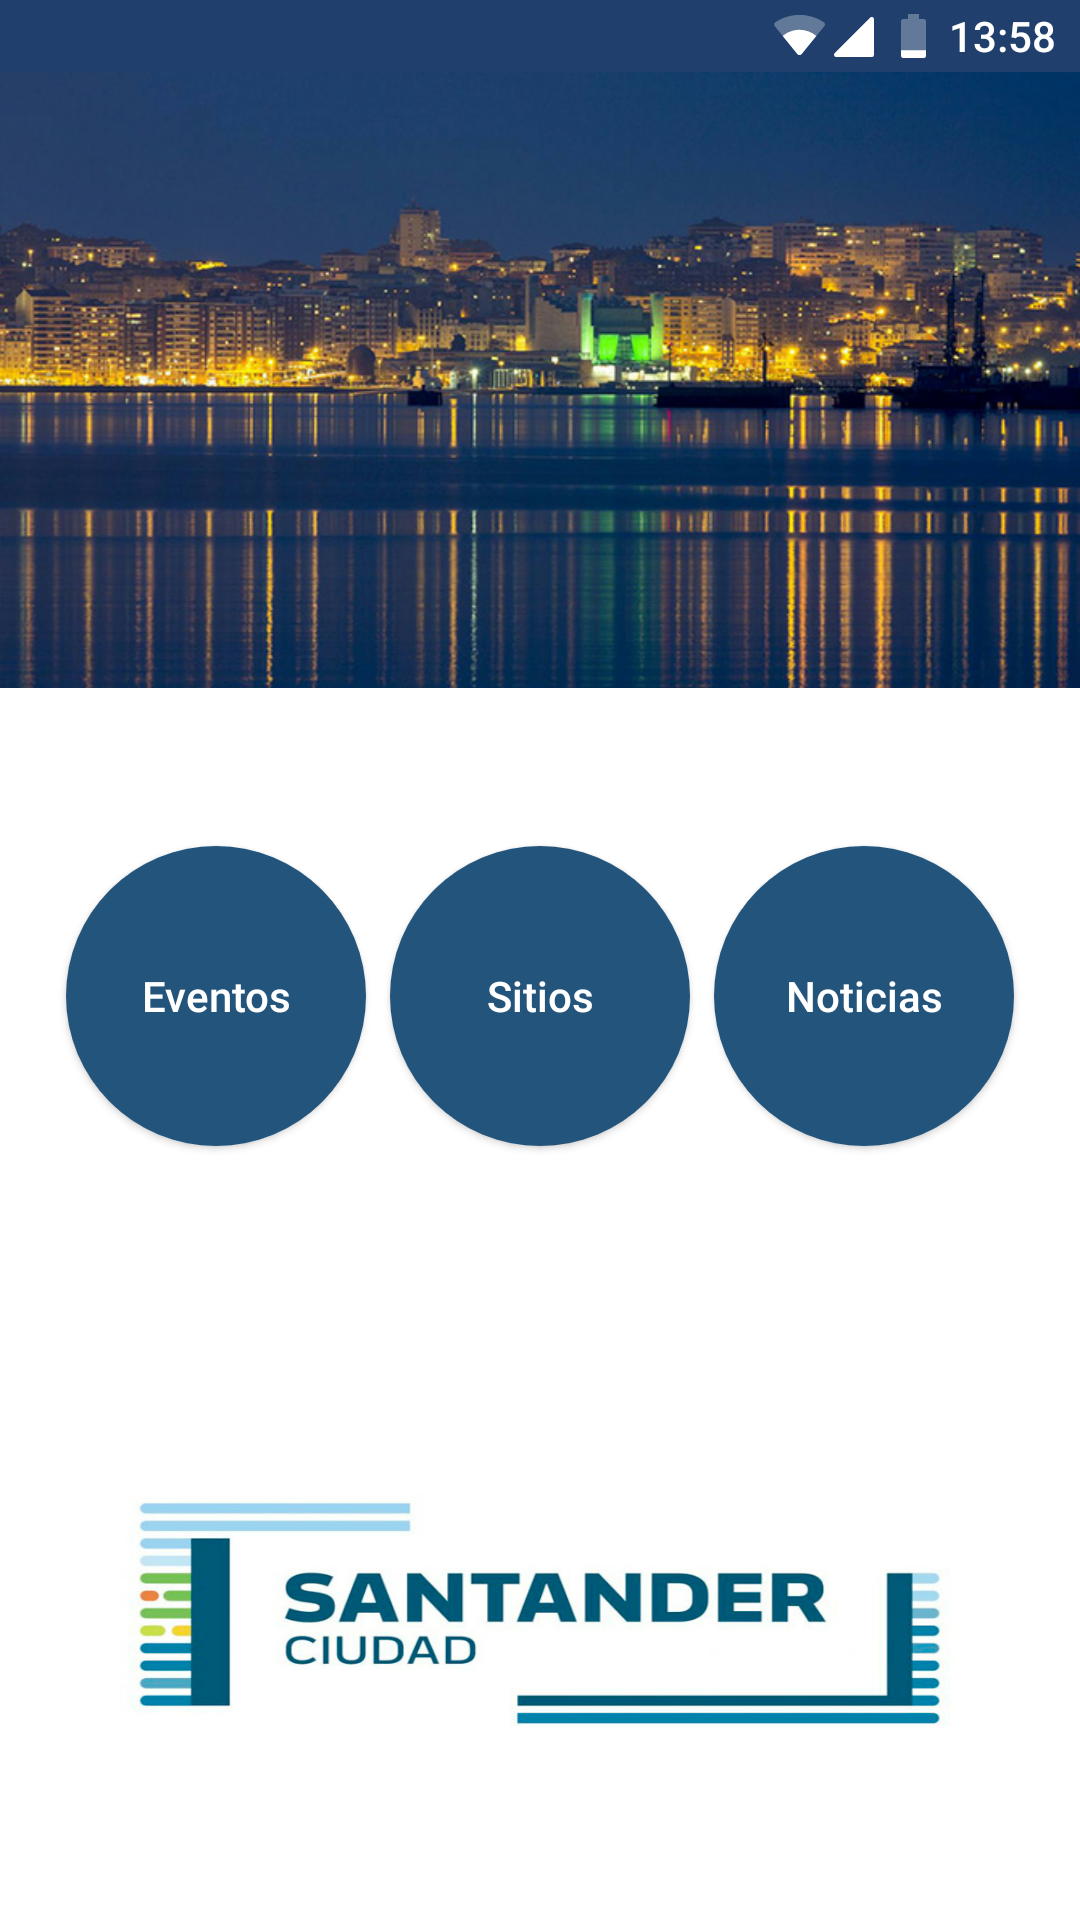 http://datos.santander.es/wp-content/uploads/2019/04/Screenshot_20190410-135814_1.png